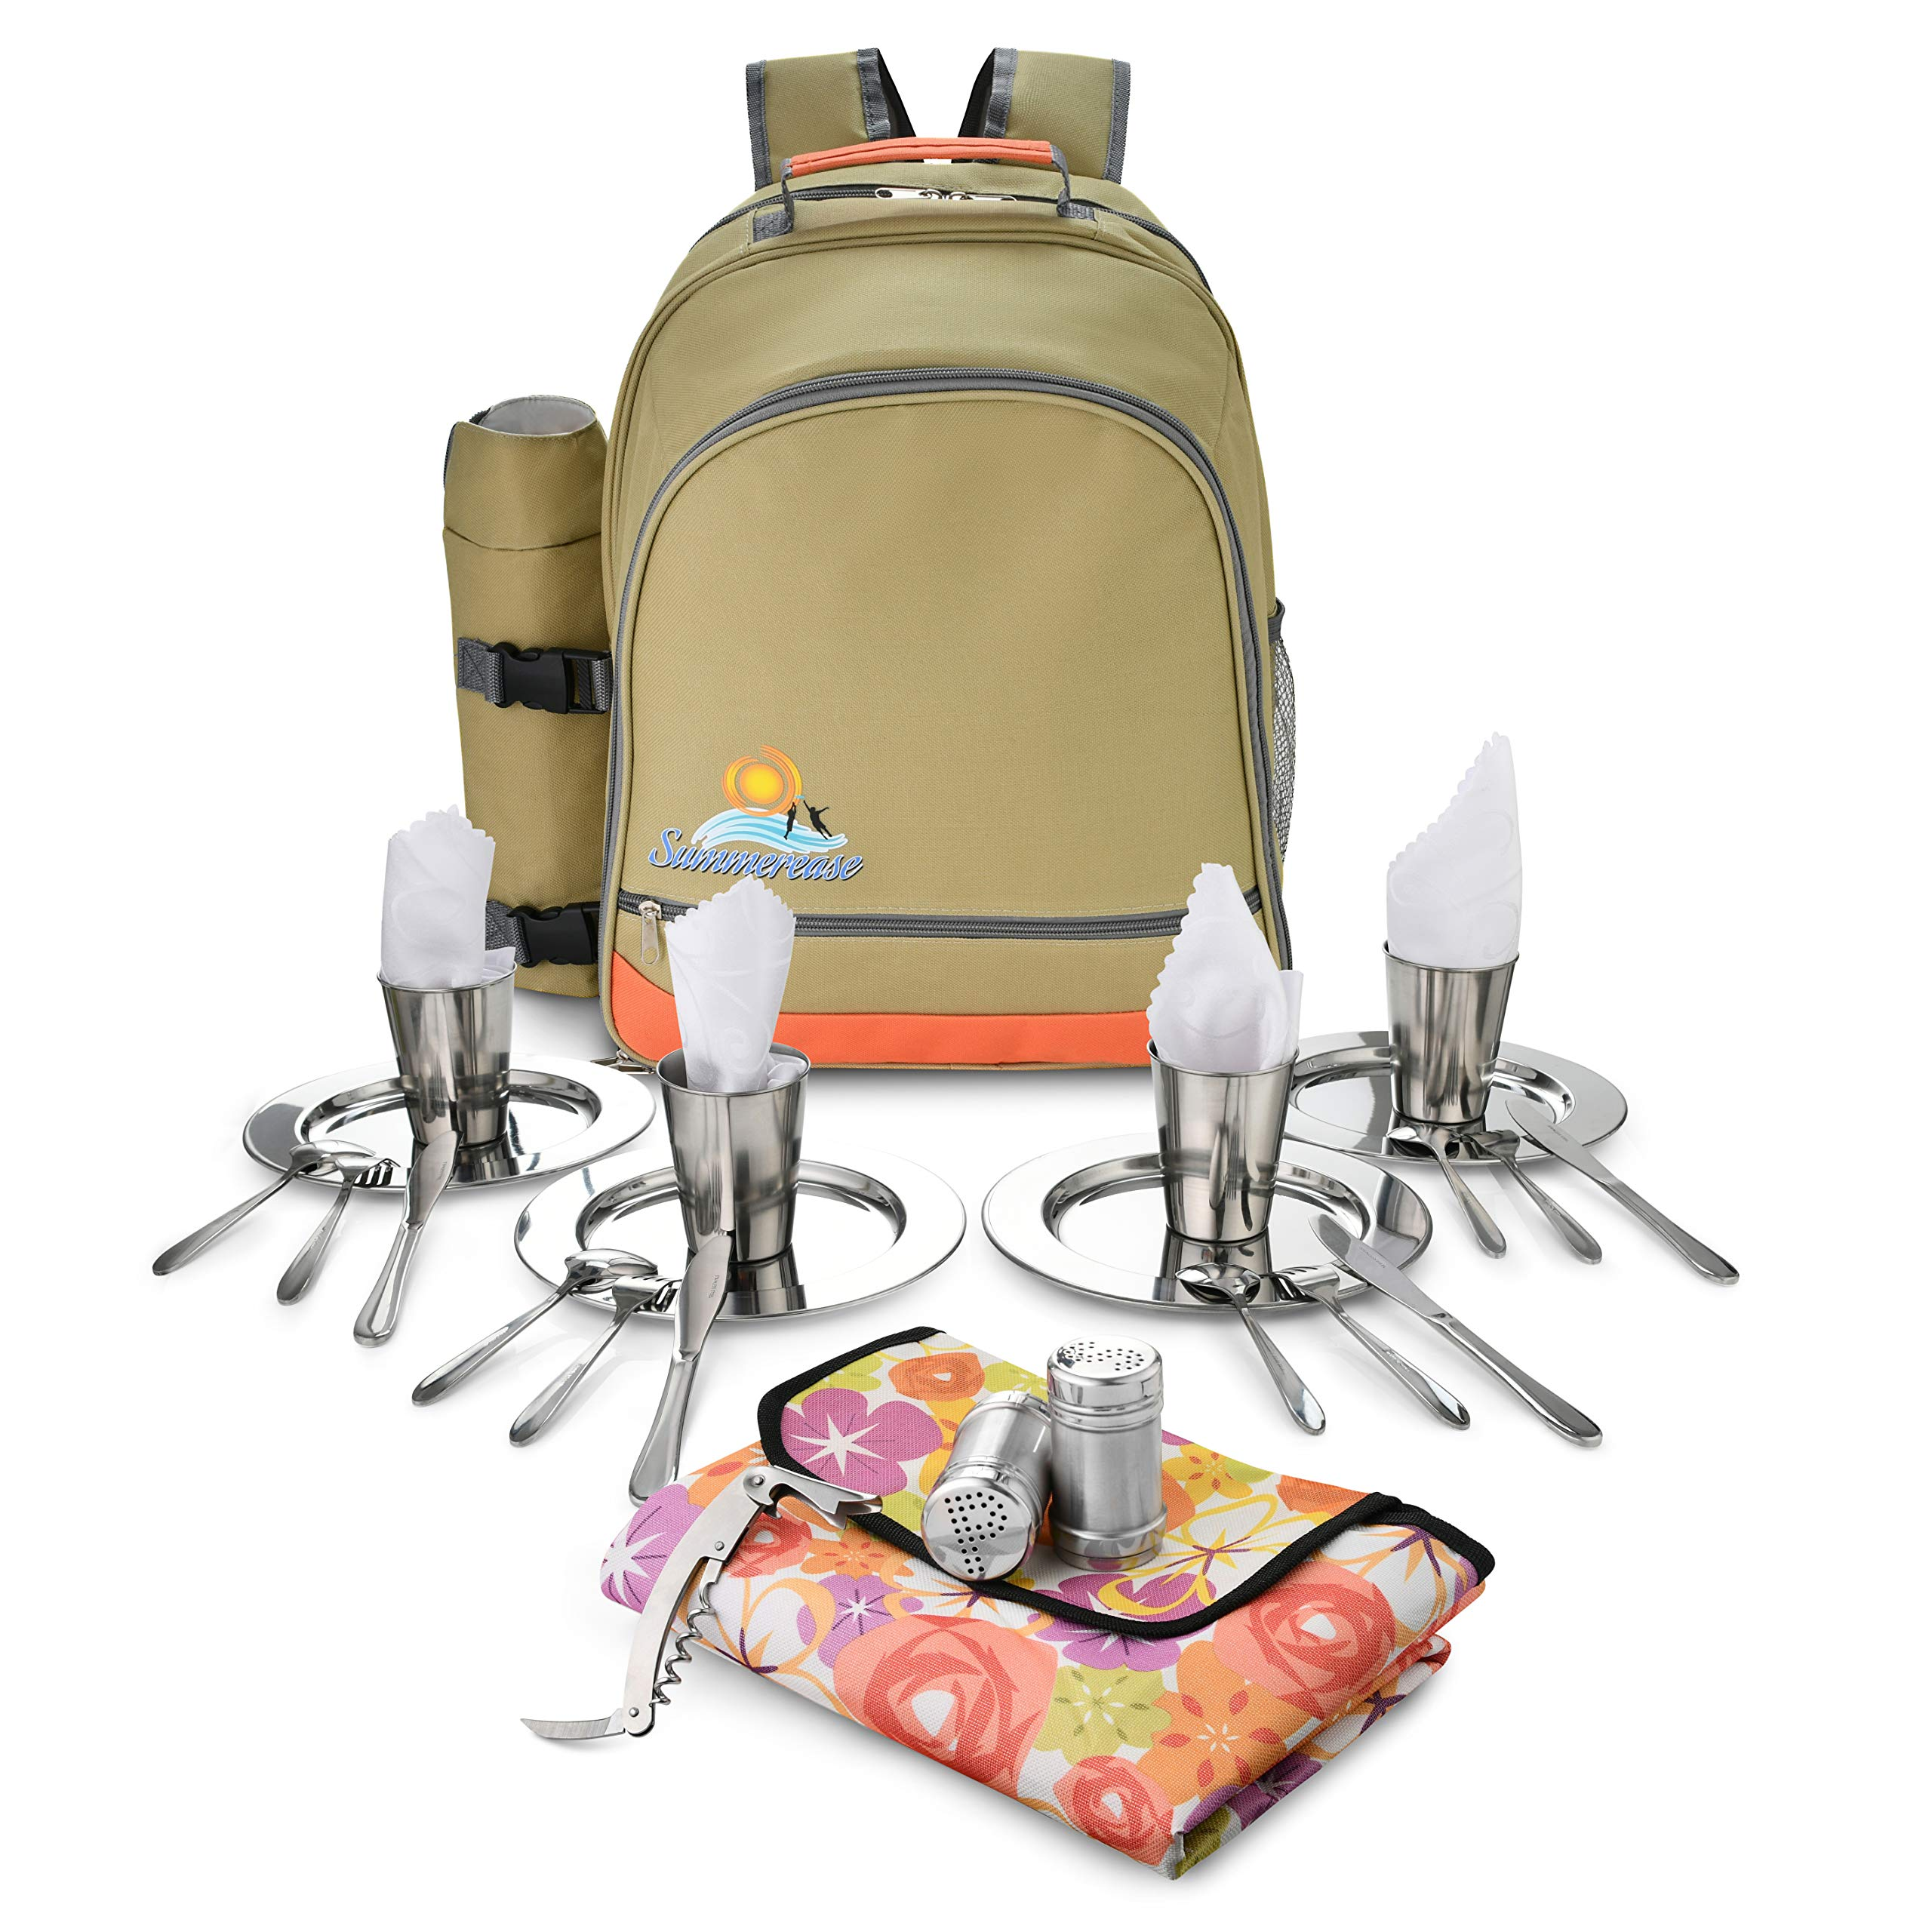 4-Person Picnic Backpack Bag | Insulated Picnic Basket or Cooler Lunch Box, compartments Set | Includes Luxury Stainless Steel Cutlery, Plates & Cups. Backpacks/Baskets for Outdoor Camping & Hiking